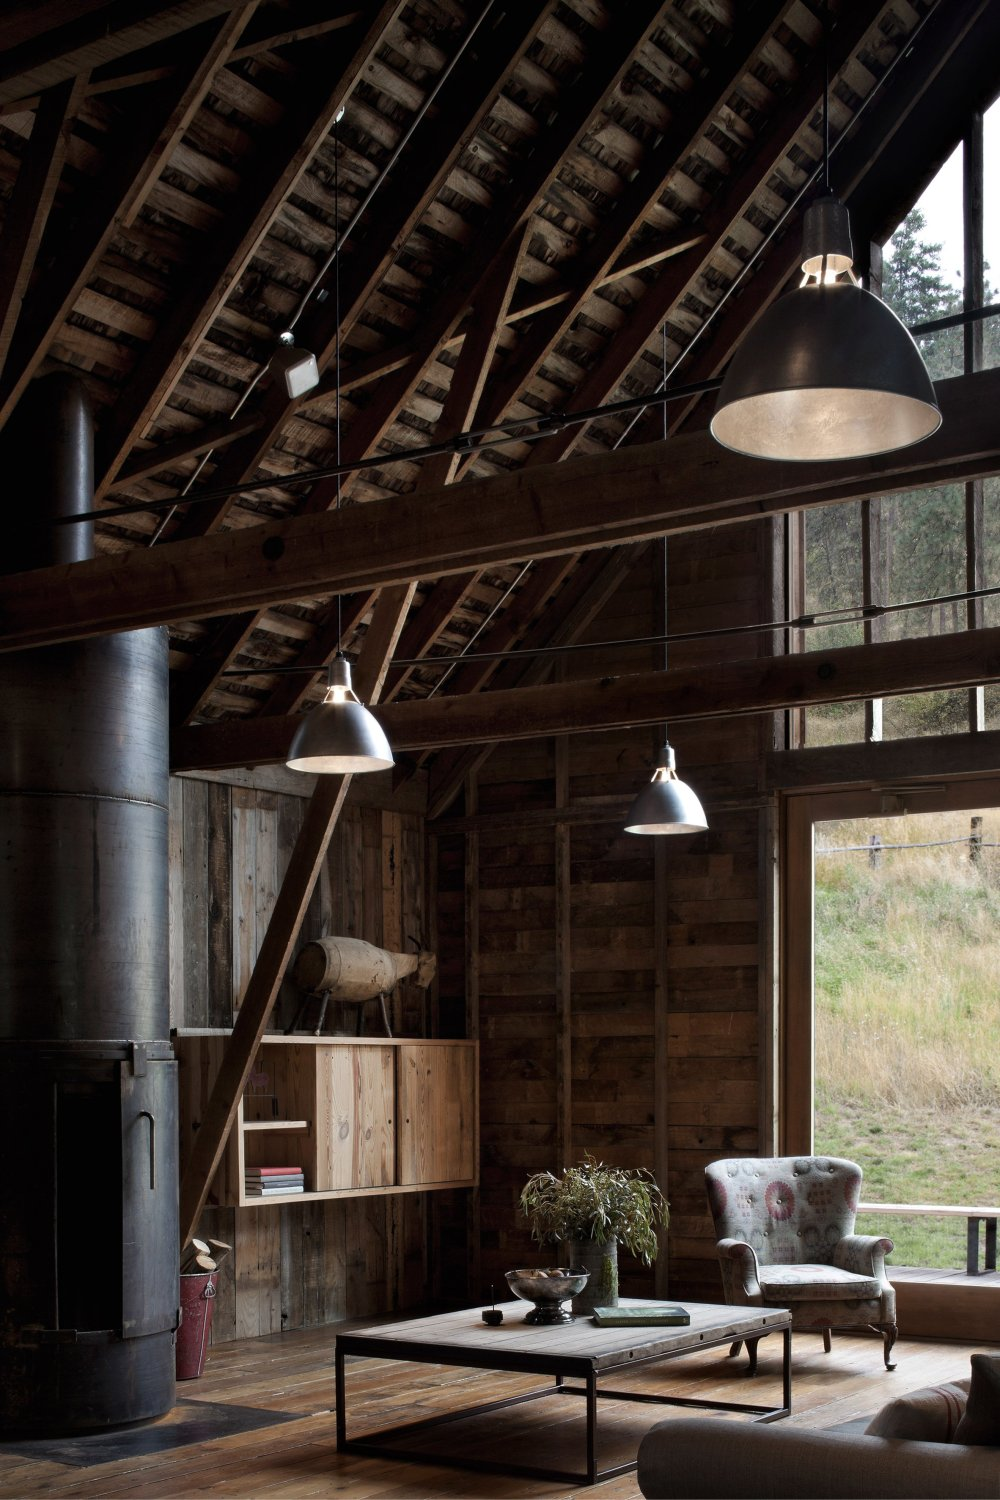 canyon-barn-mw-works-architecture-east-cascades-usa_dezeen_2364_col_1